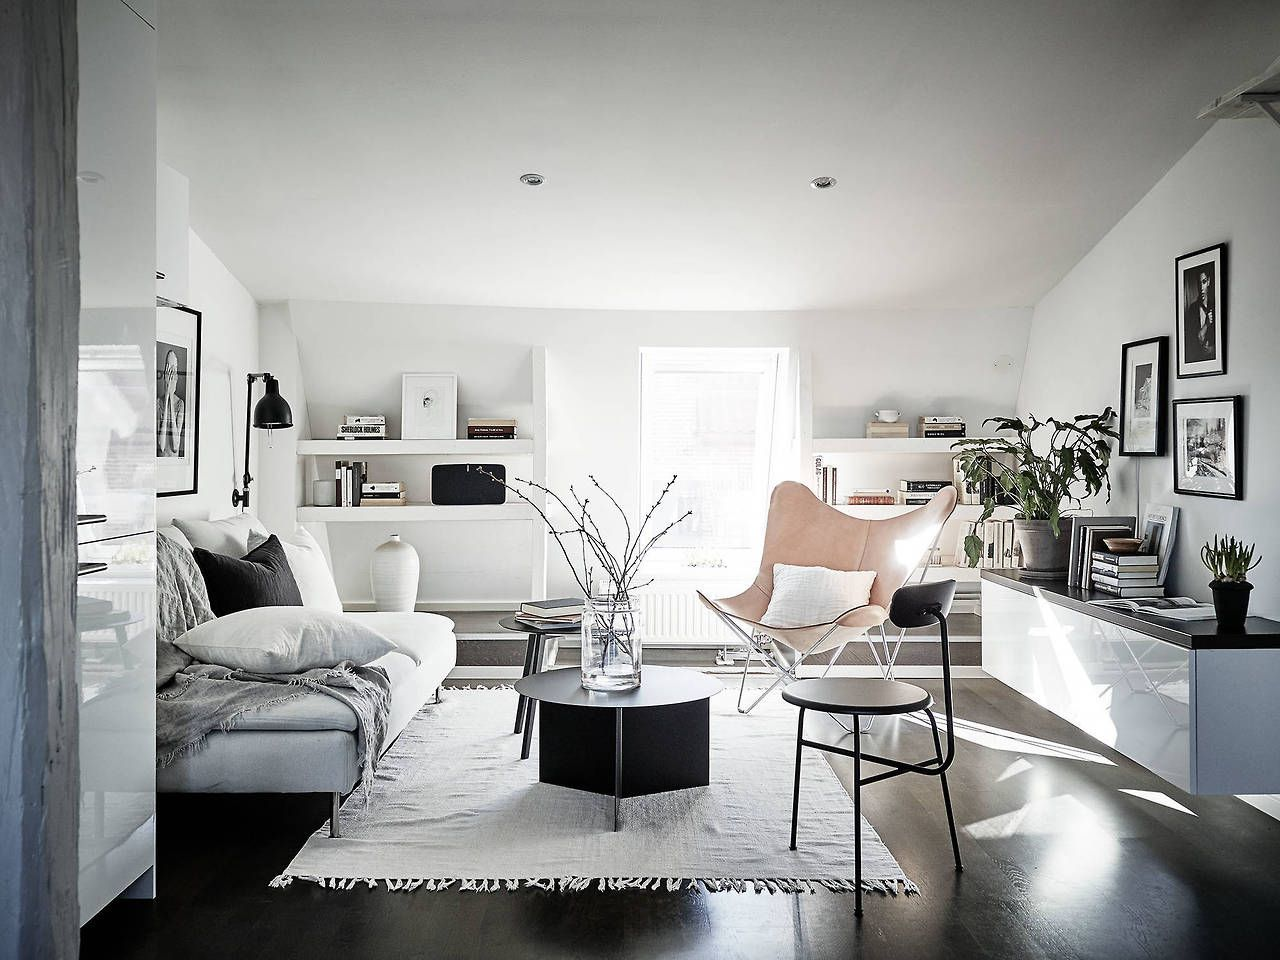 Gravity home ideas for the house pinterest living rooms